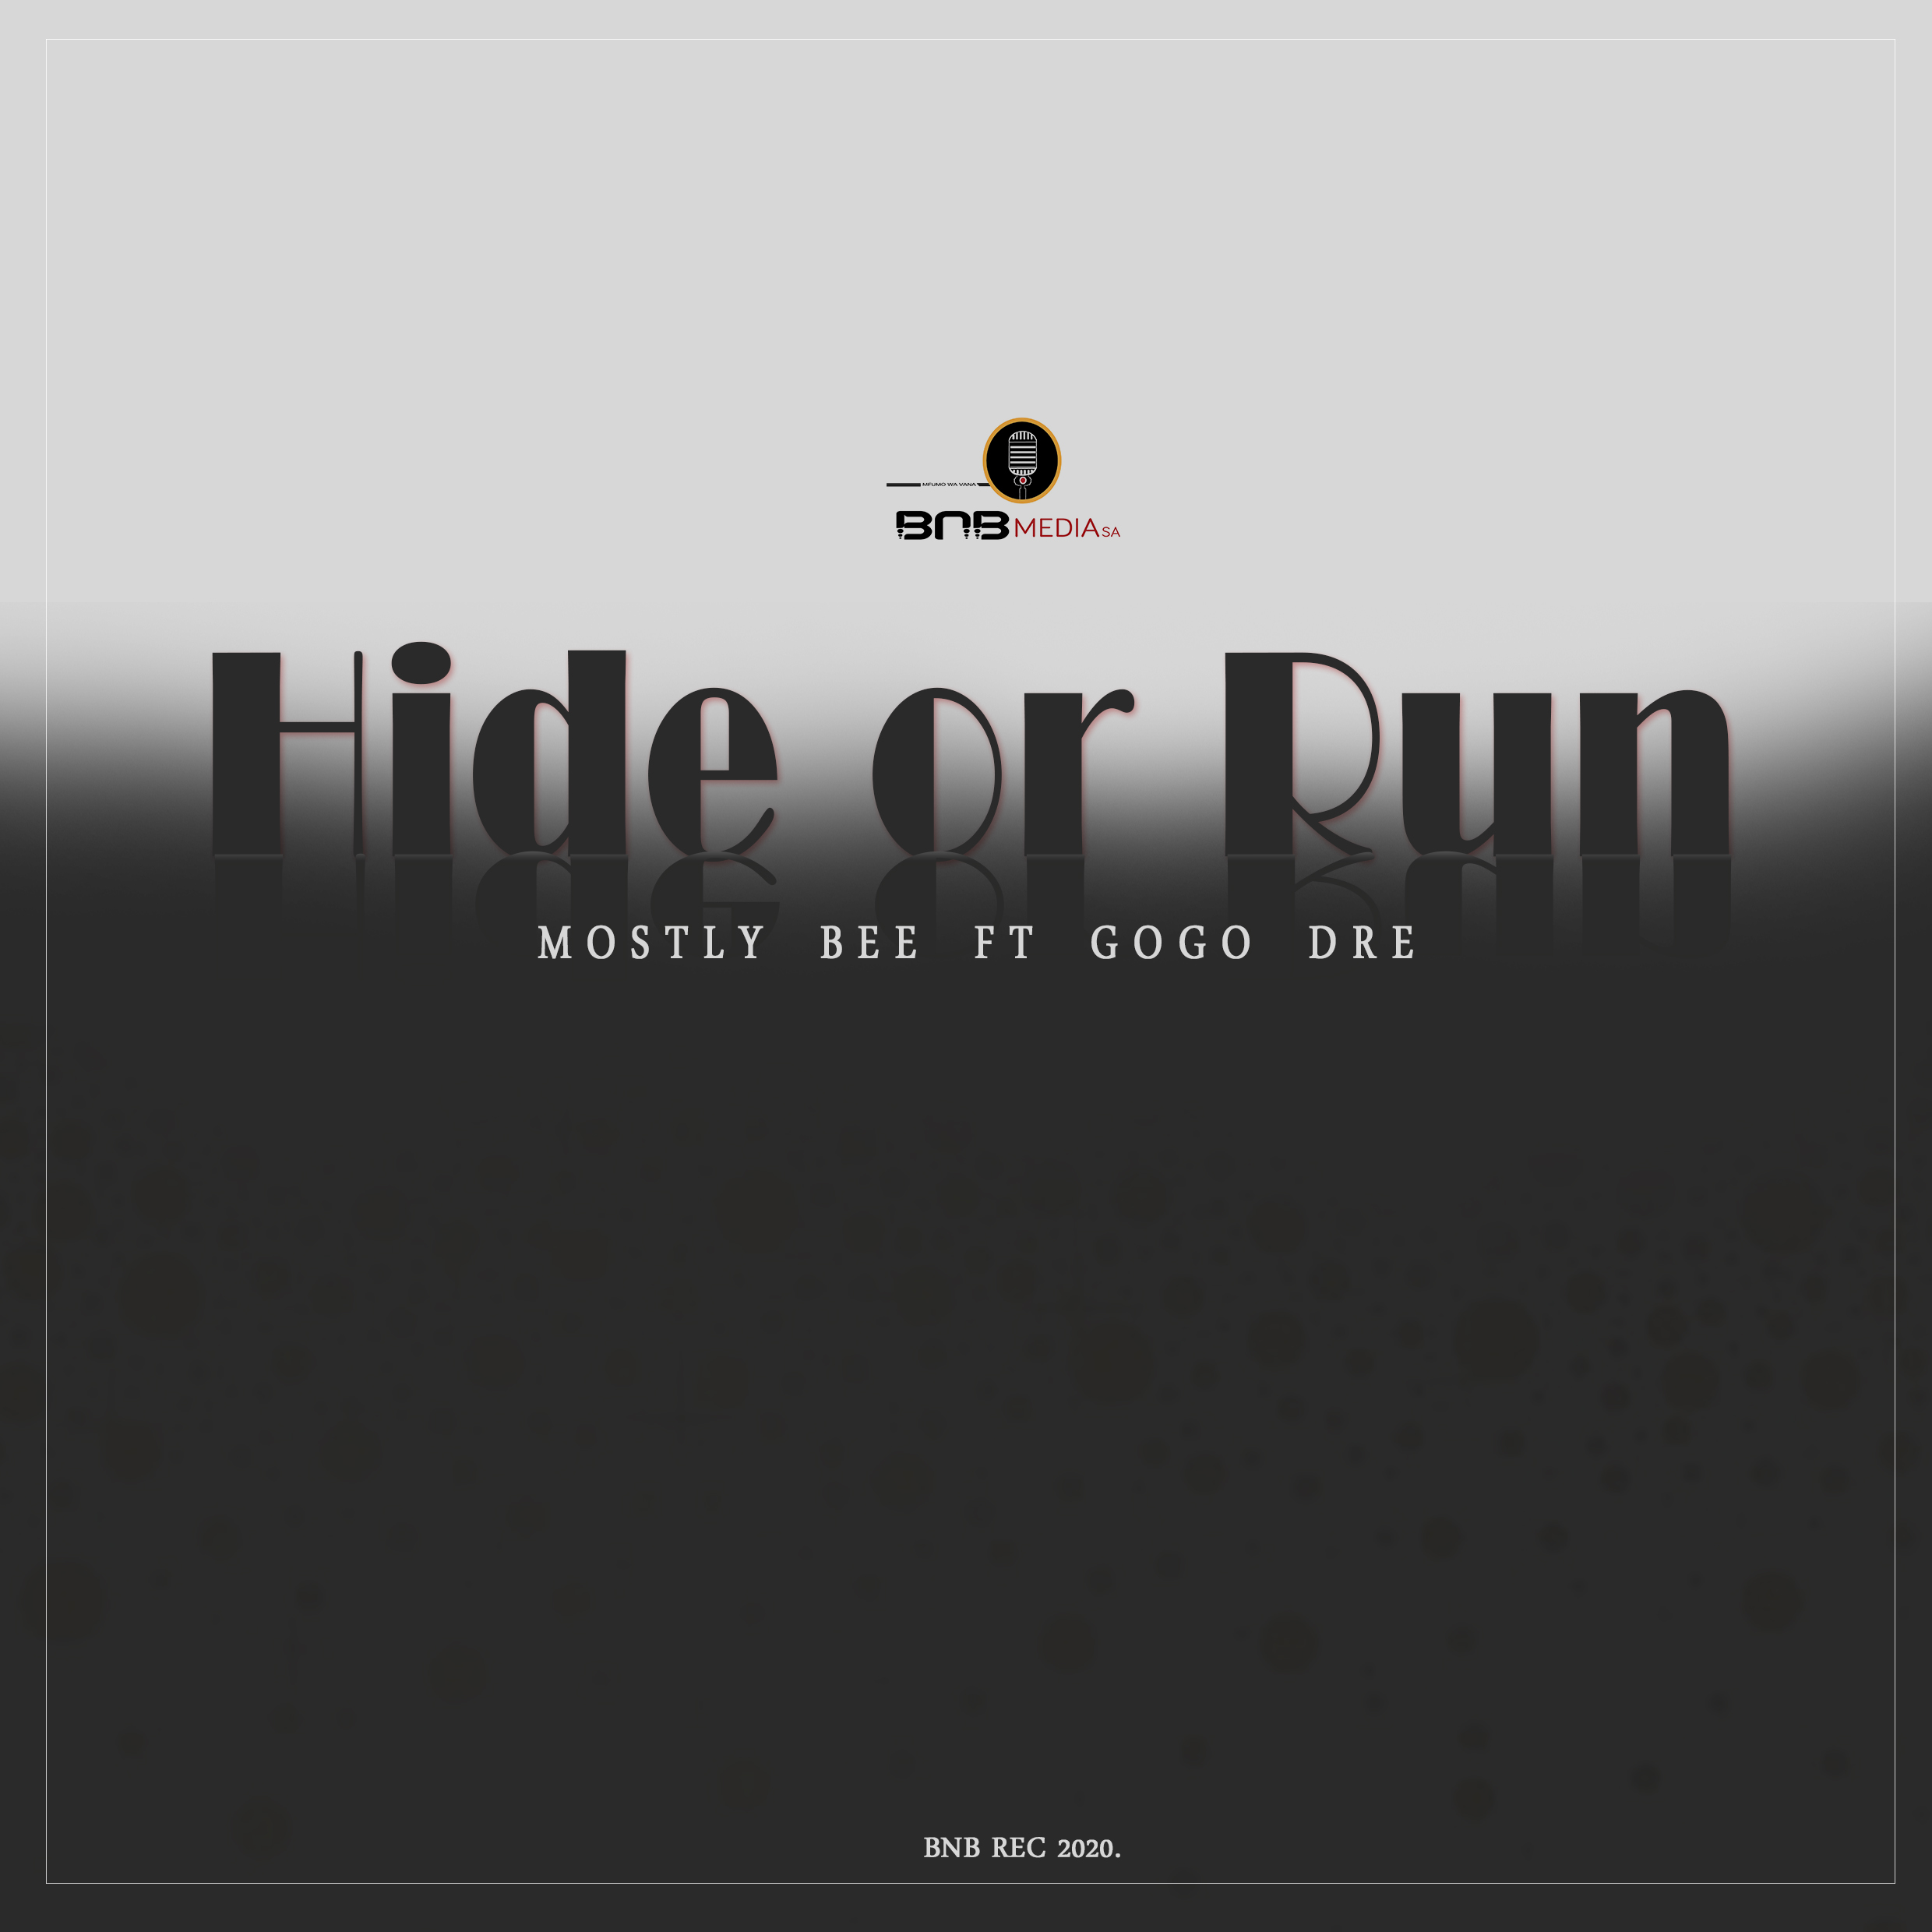 Hide or Run   Cover